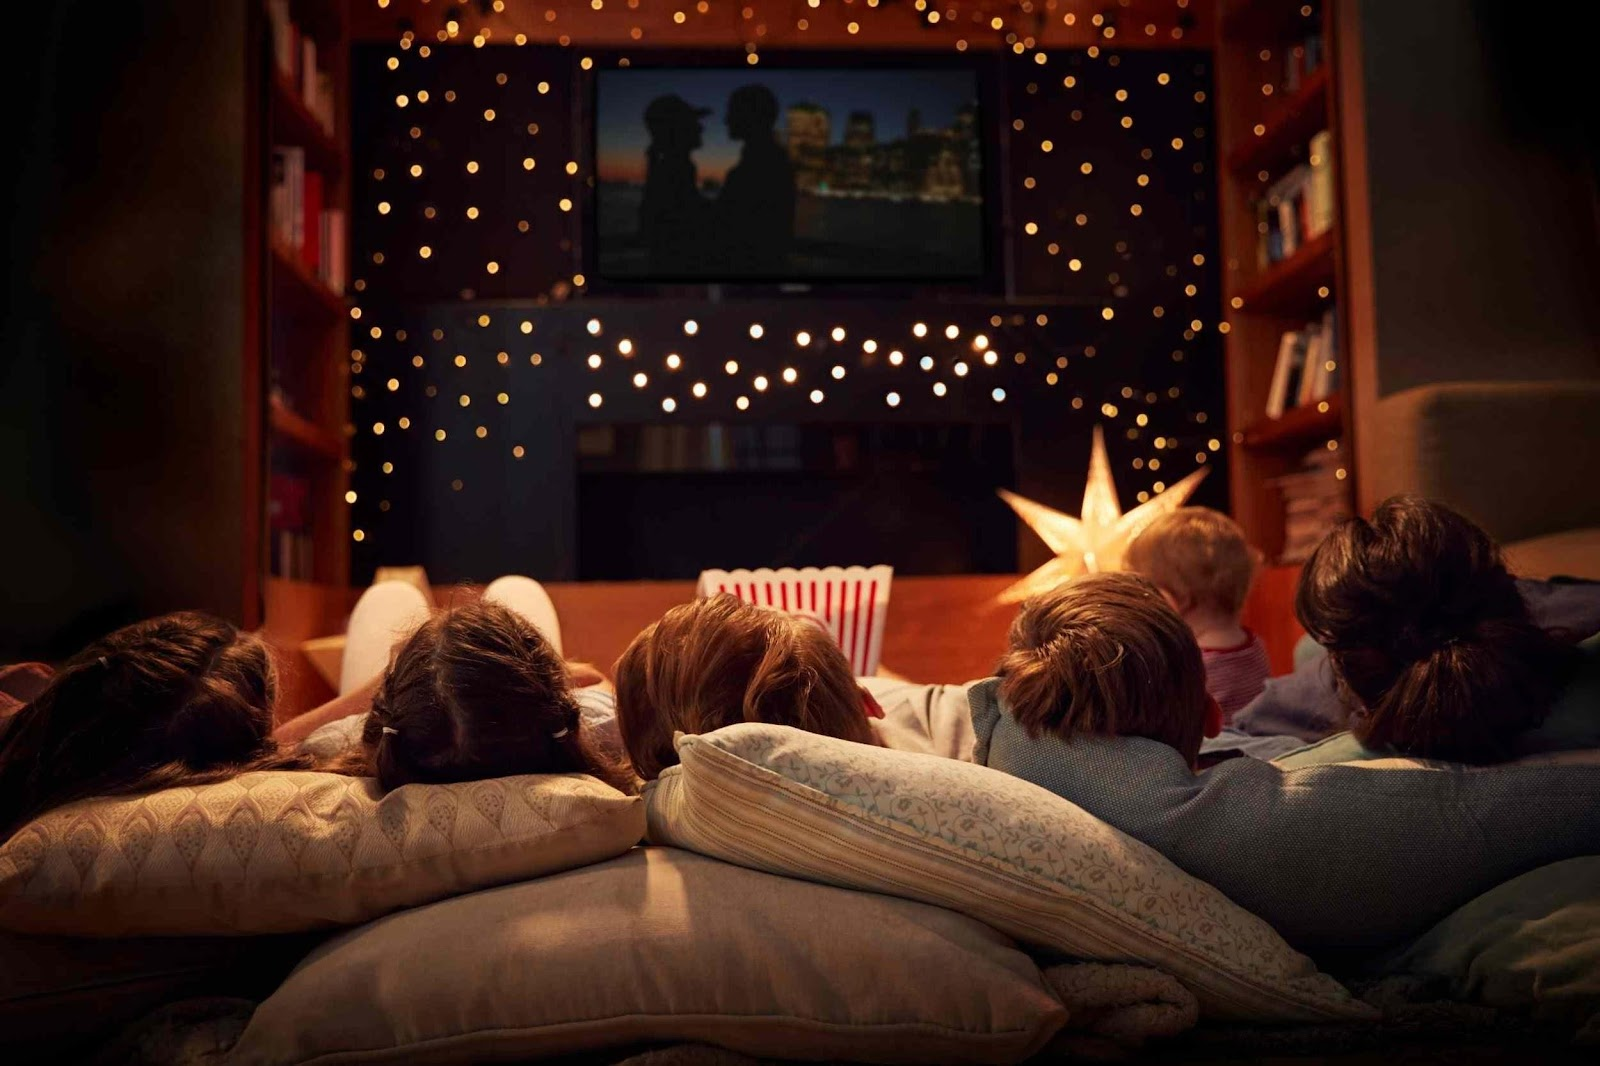 Movie night sleepover for kids with friends.